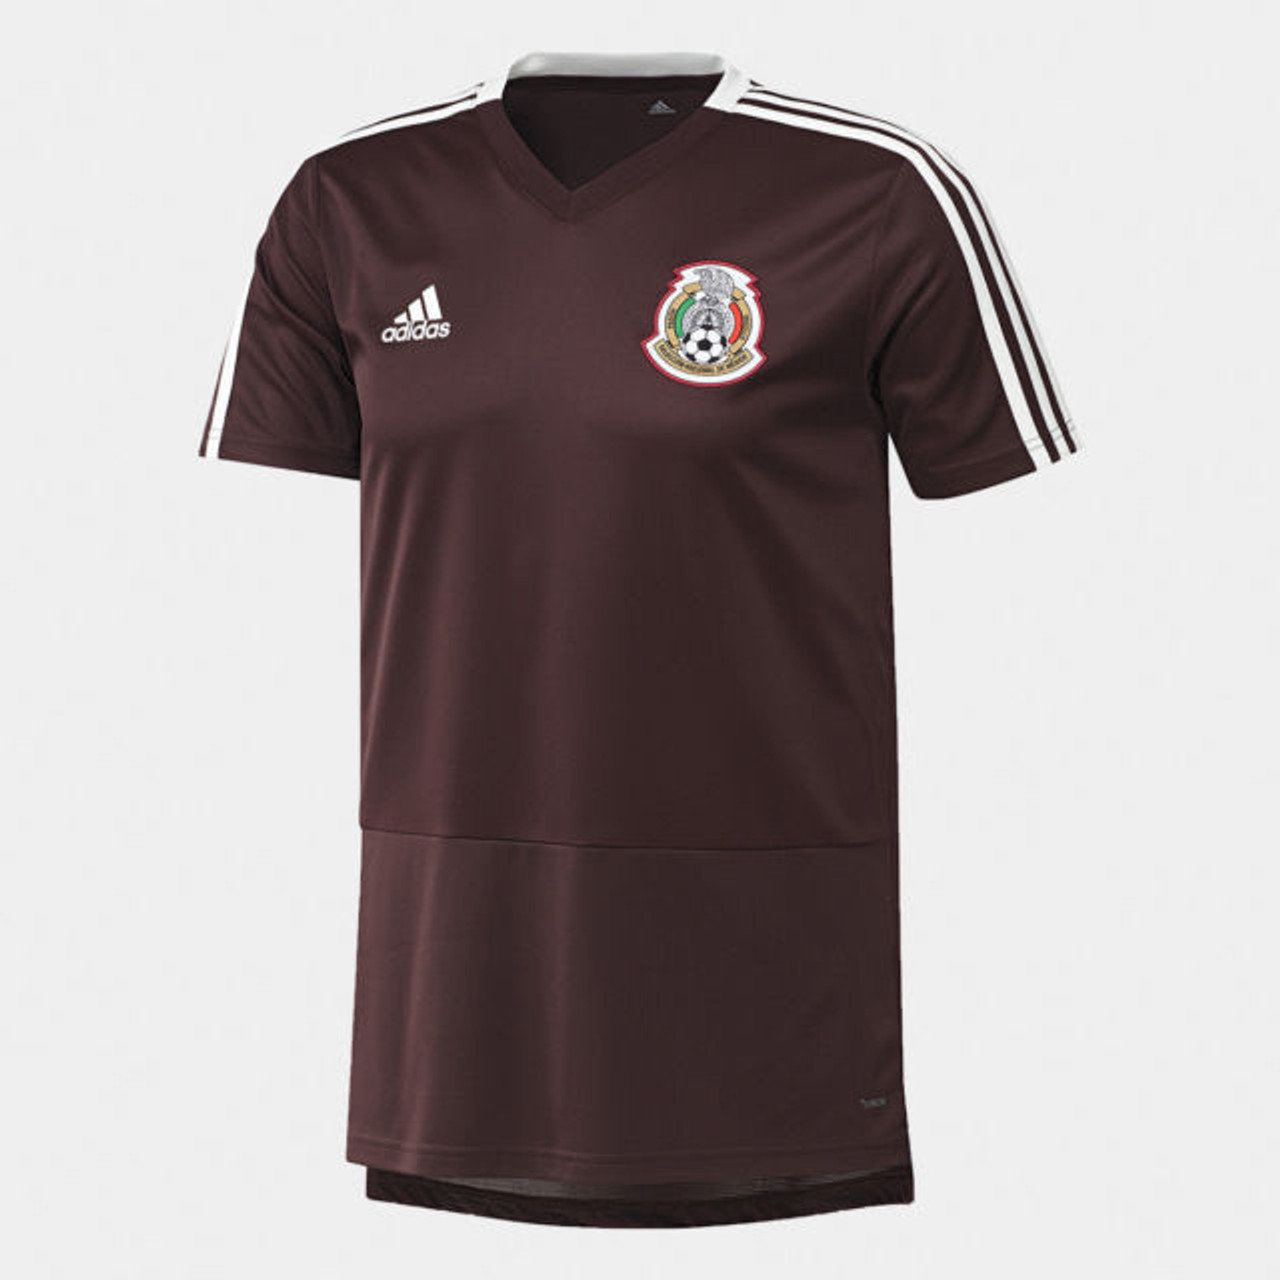 8a06a2ce1 ADIDAS MEXICO 2018 TRAINING JERSEY - Soccer Plus